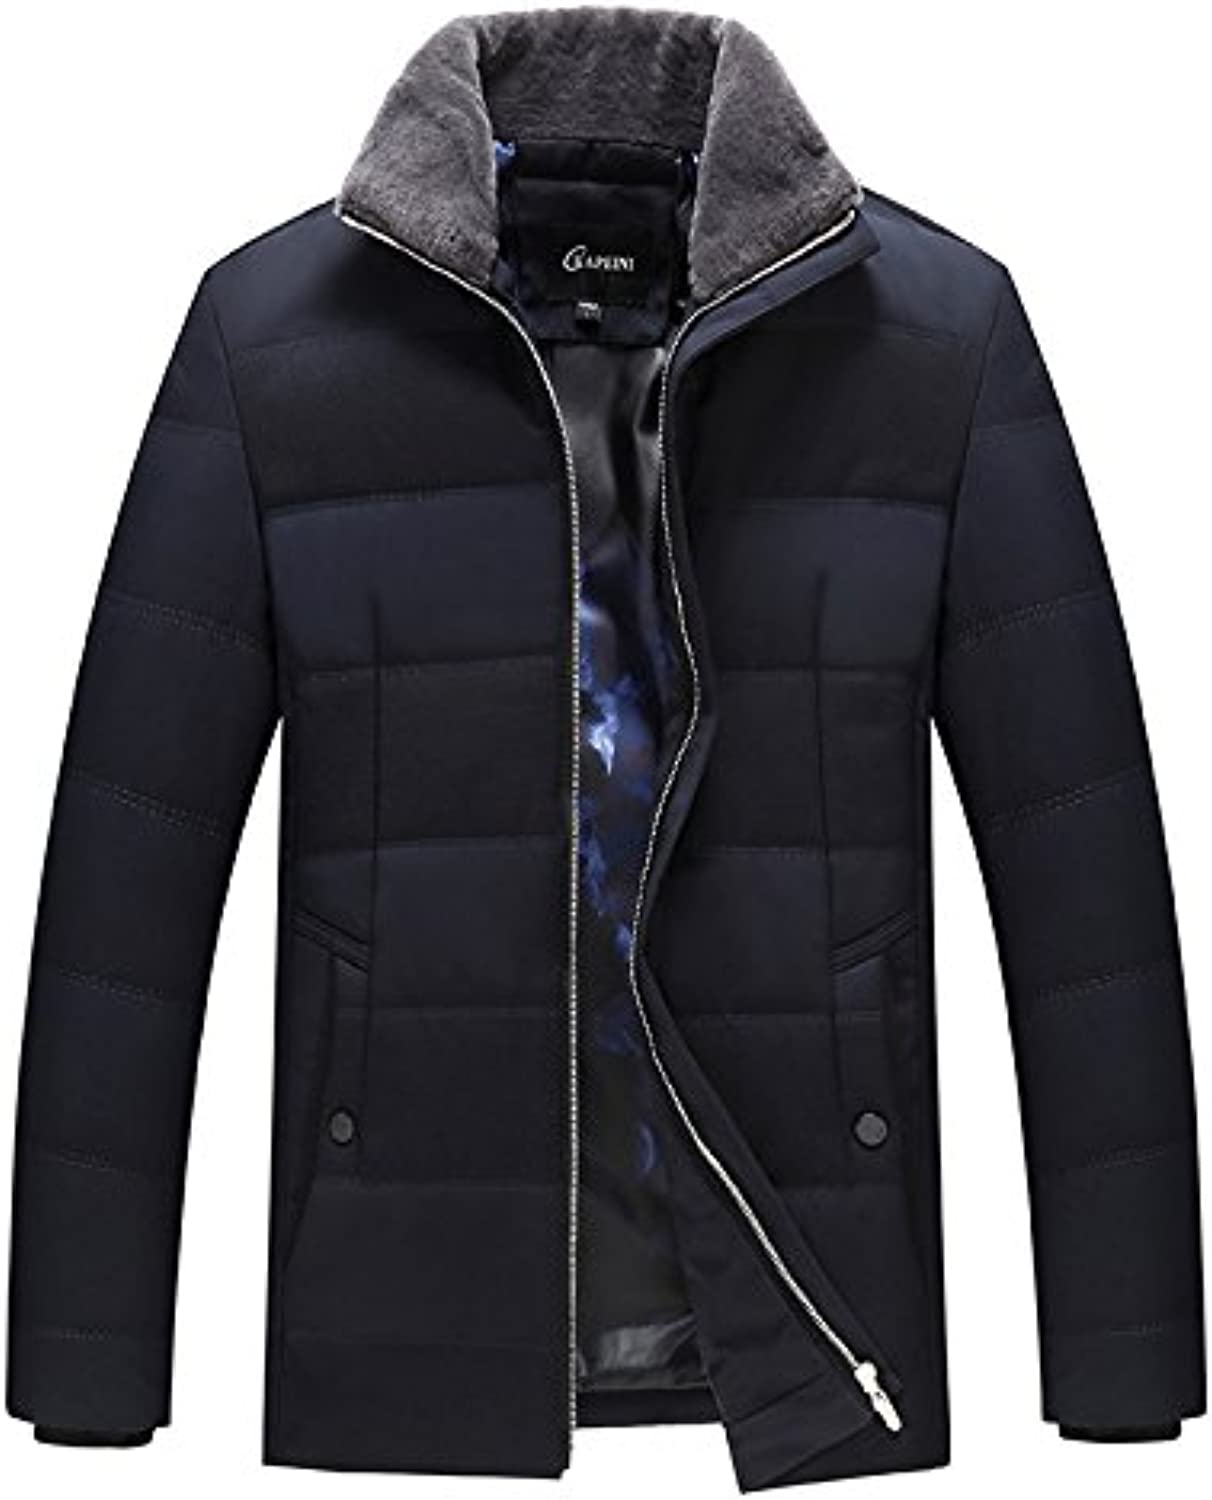 Lsm-Coat Men's Winter Station Collar Warm Quilted Padded Puffer Jacket Outwear Coat